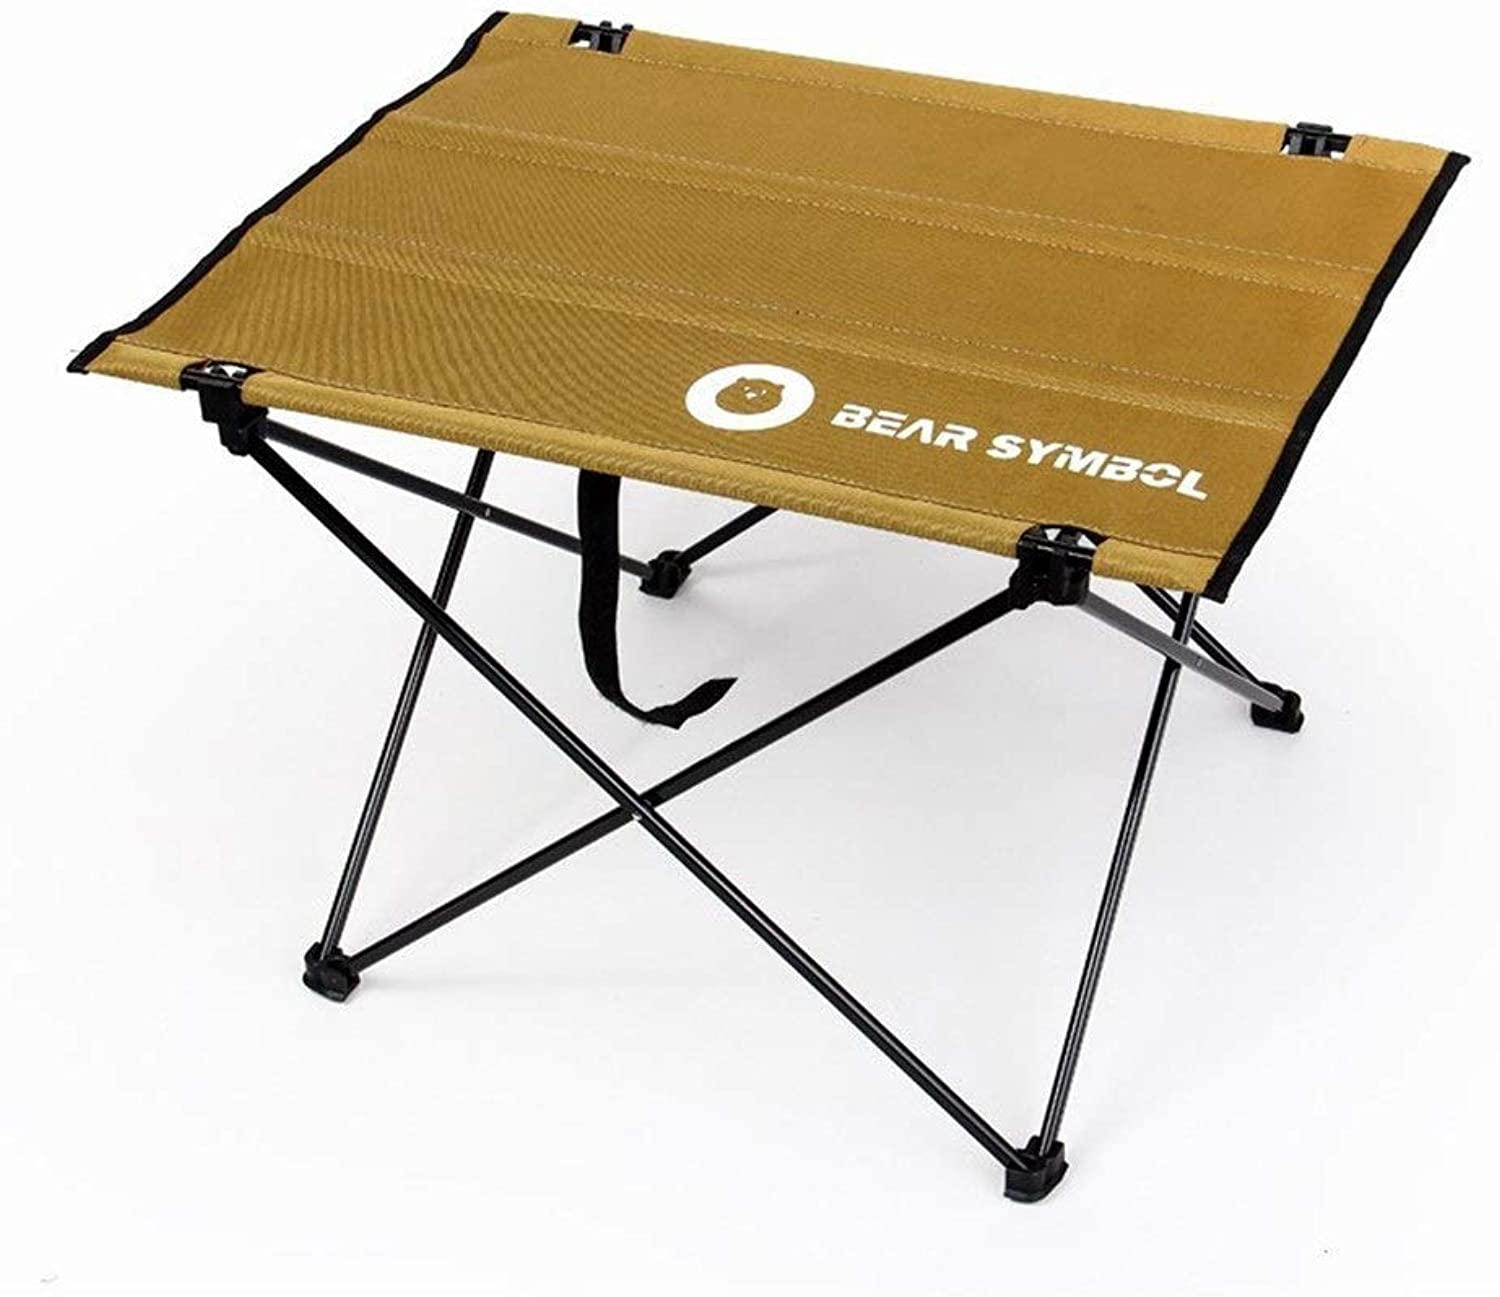 Outdoor Camping Table Chair Suit MultiFunctional Folding Table and Chair Portable Fishing Camping Garden Travel Beach Picnic Outdoor